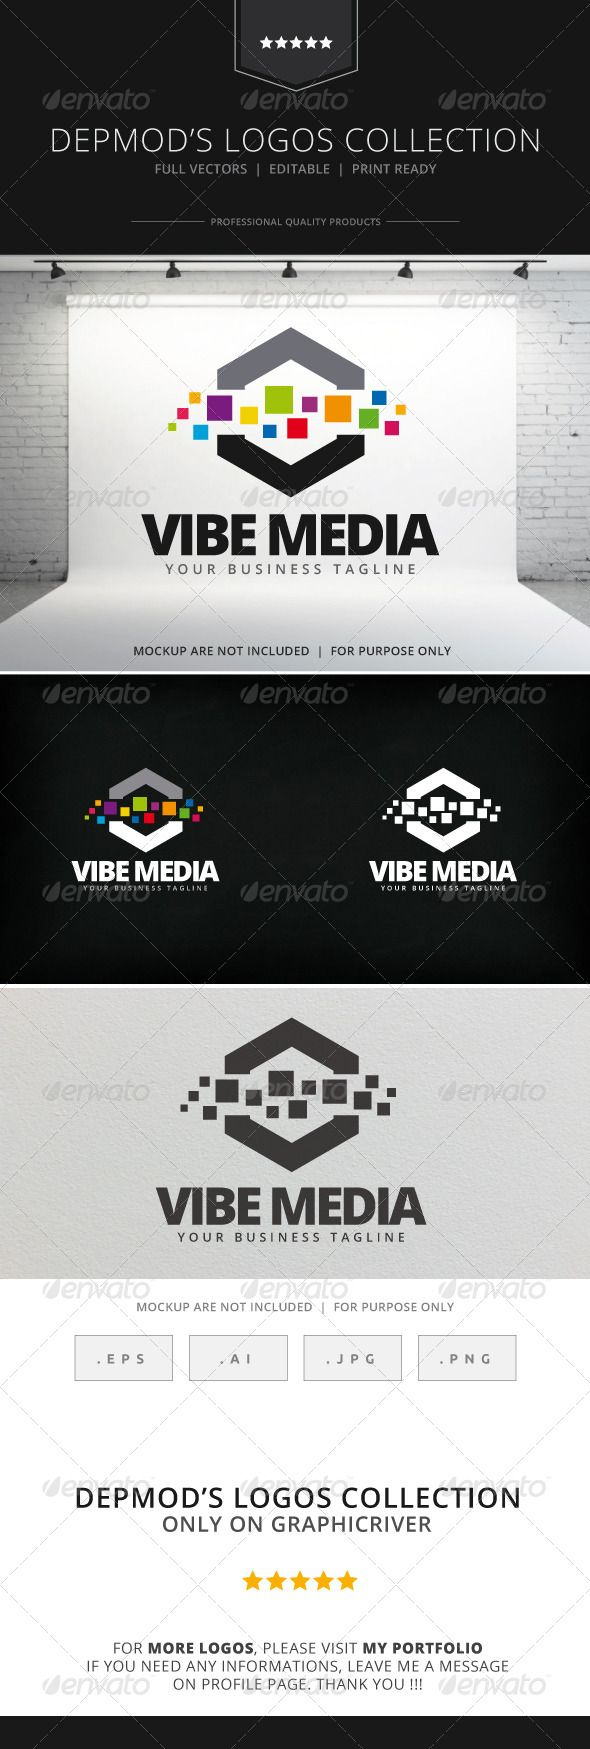 Vibe Media Logo 3226 best Abstract Logo